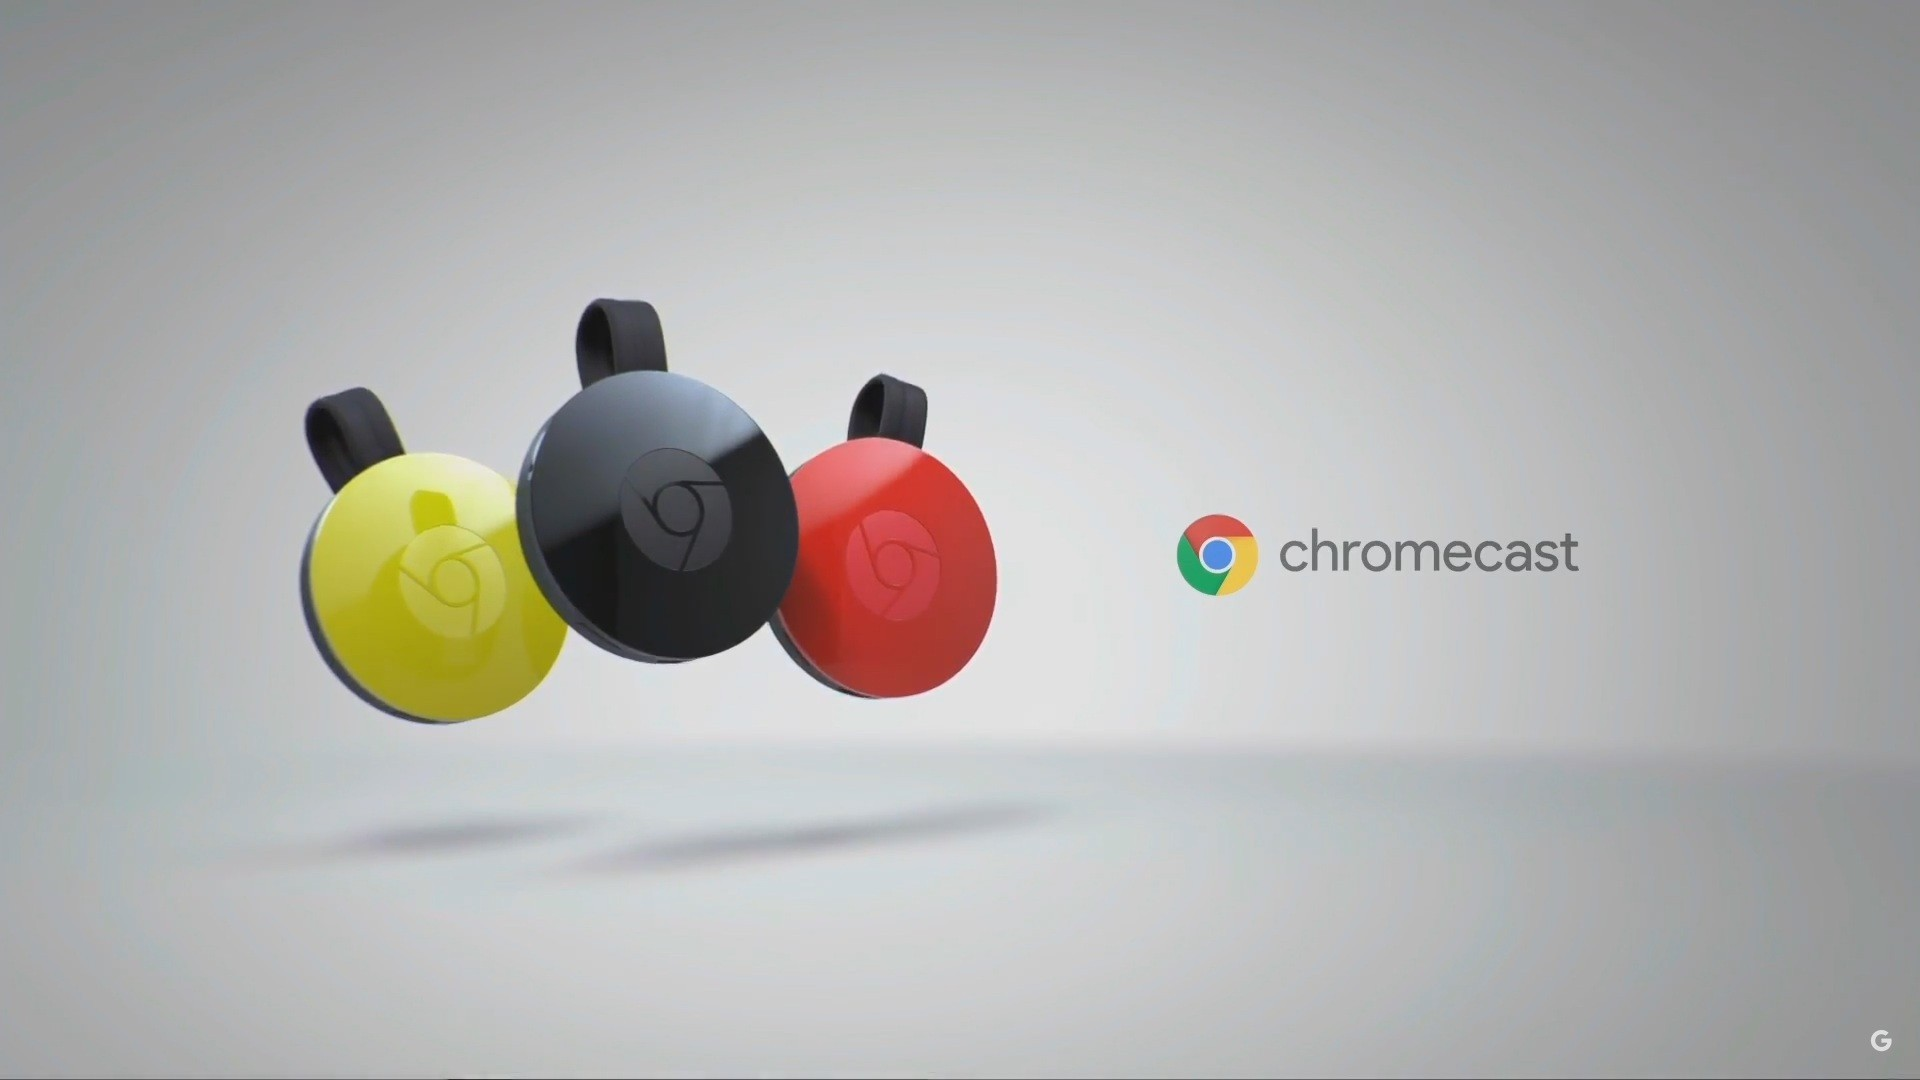 Google Finally Fixes Android and Chromecast Bug Crashing Wi-Fi Networks